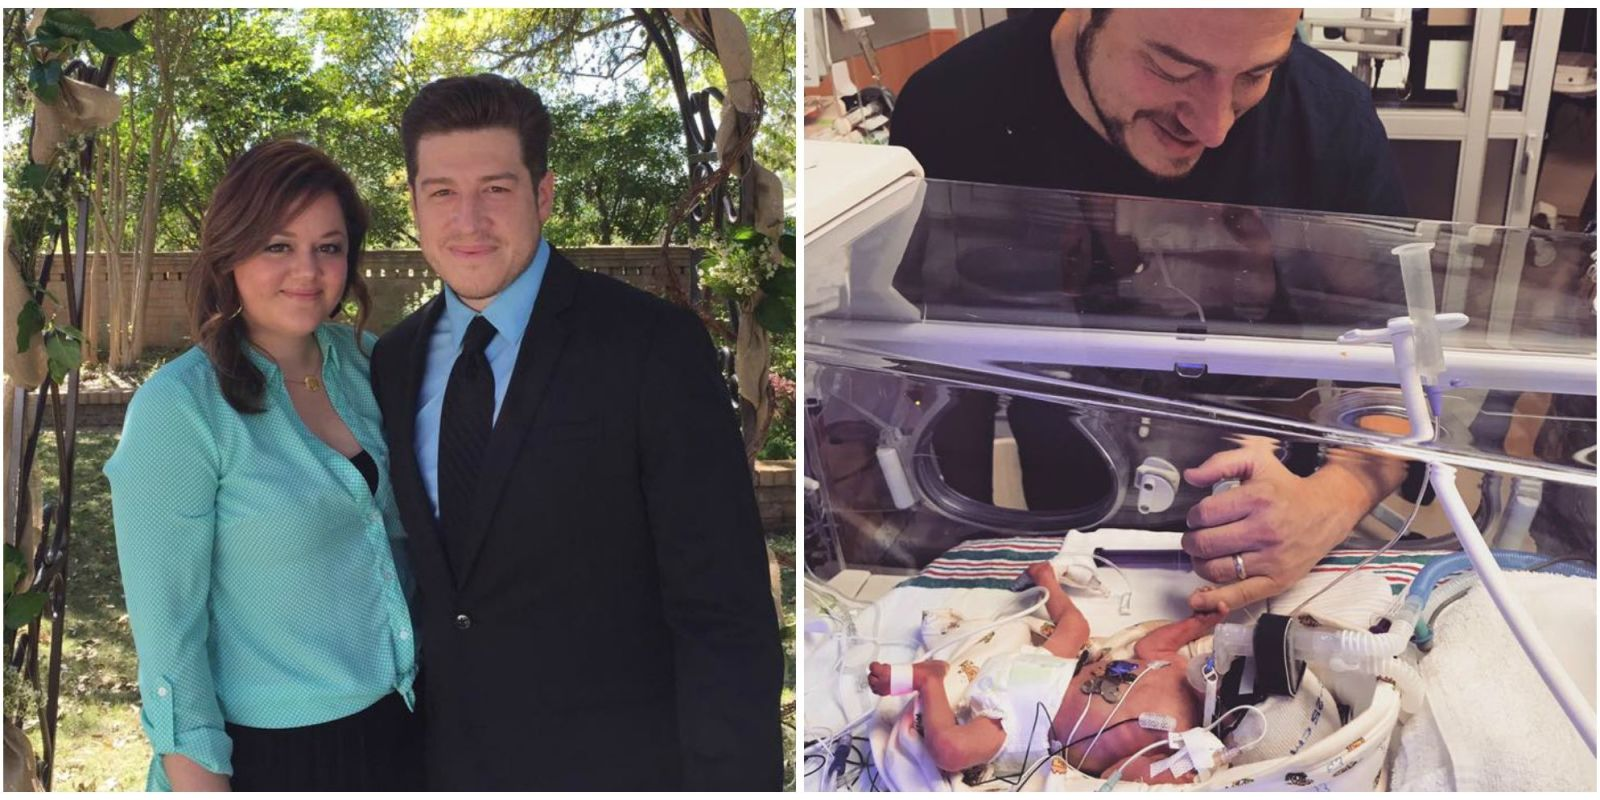 Texas Pastor Asks For Prayers and a Miracle While Wife and Newborn Fight for Their Lives